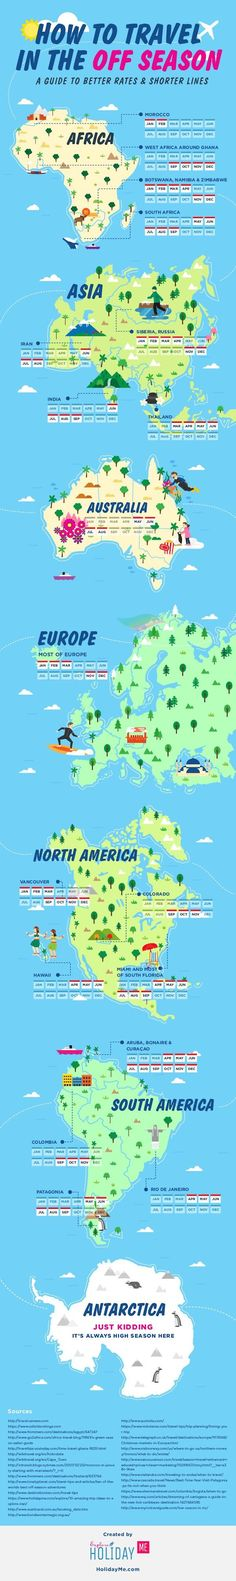 Infographic: A Guide To Off Season Travel In Countries Around The World - DesignTAXI.com